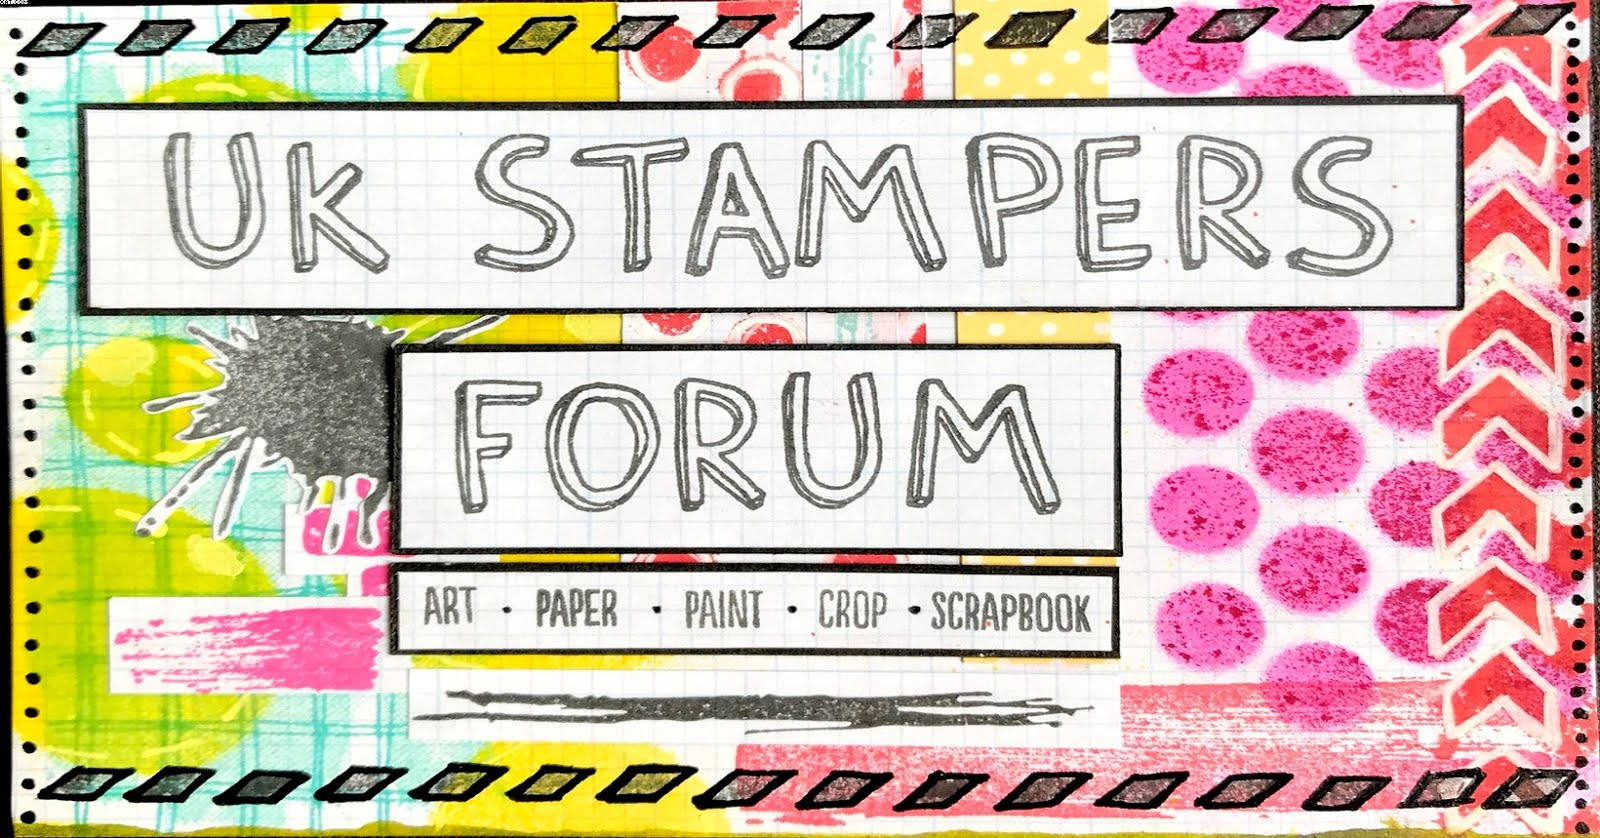 Why Not Join UK Stampers Forum, It's free & fun ....